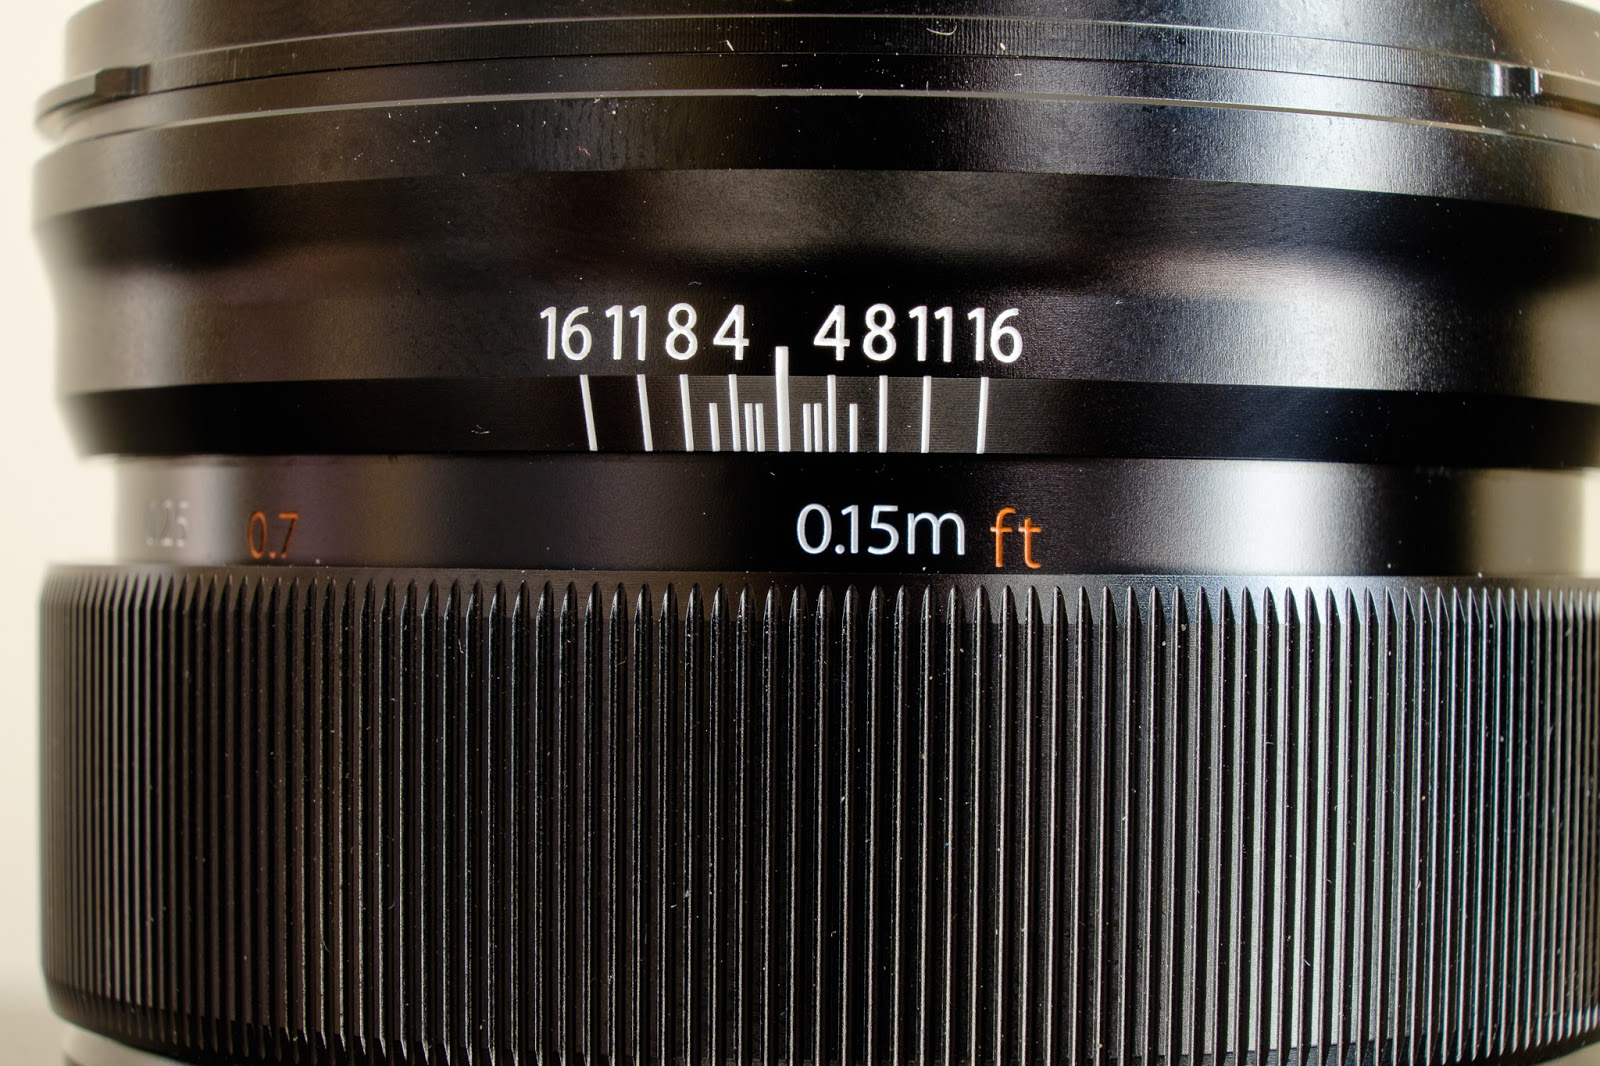 FUJIFILM MCEX-11 / MCEX-16 EXTENSION TUBES REVIEW